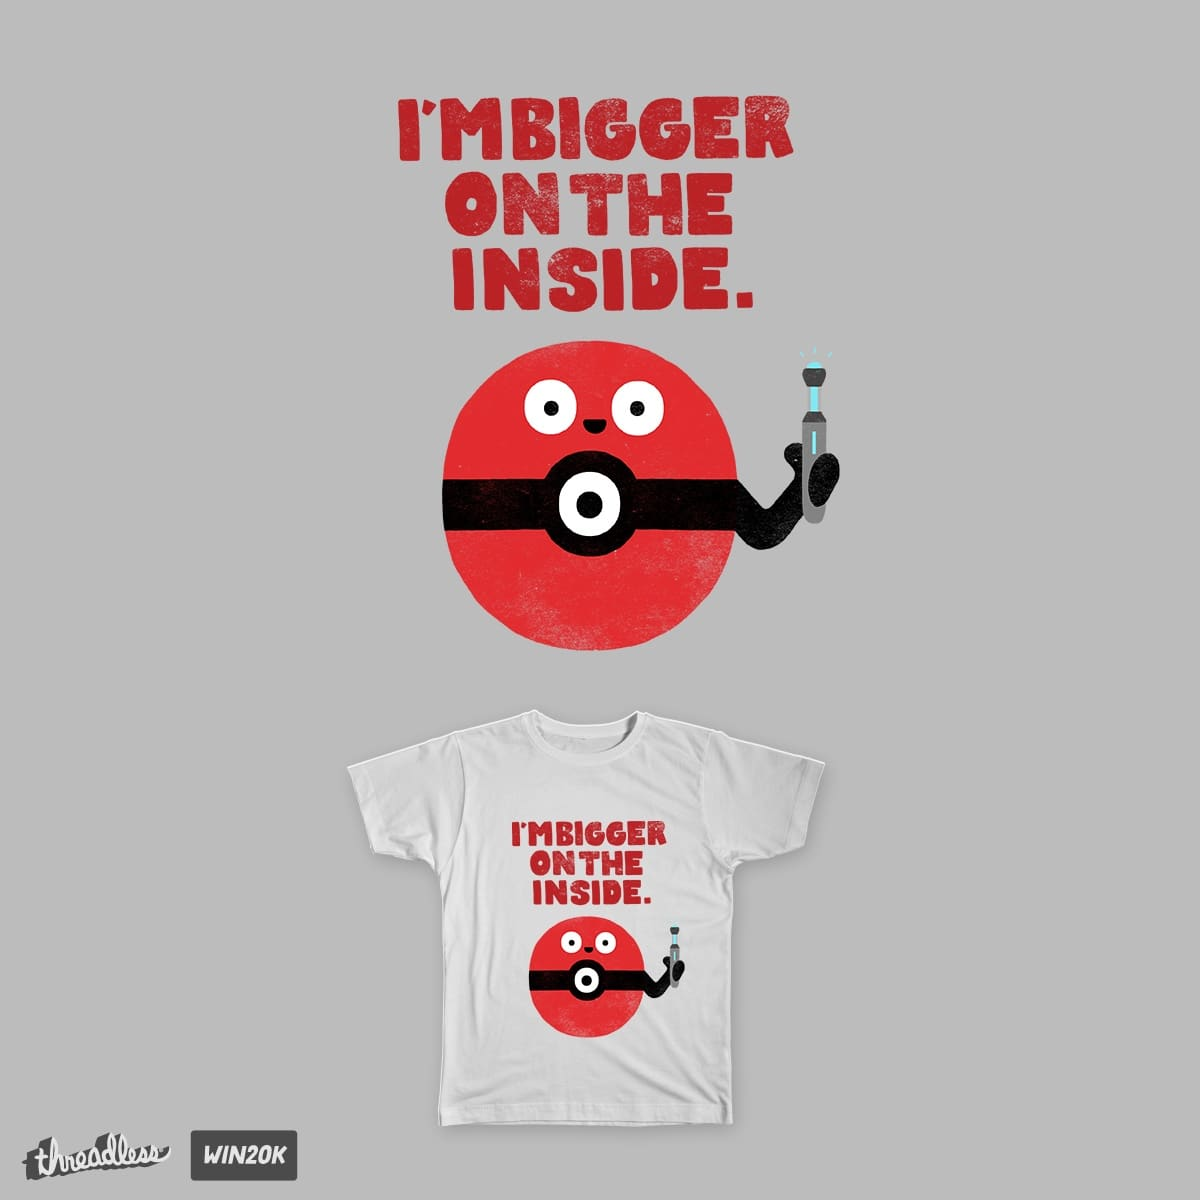 Bigger On The Inside by soursopp on Threadless